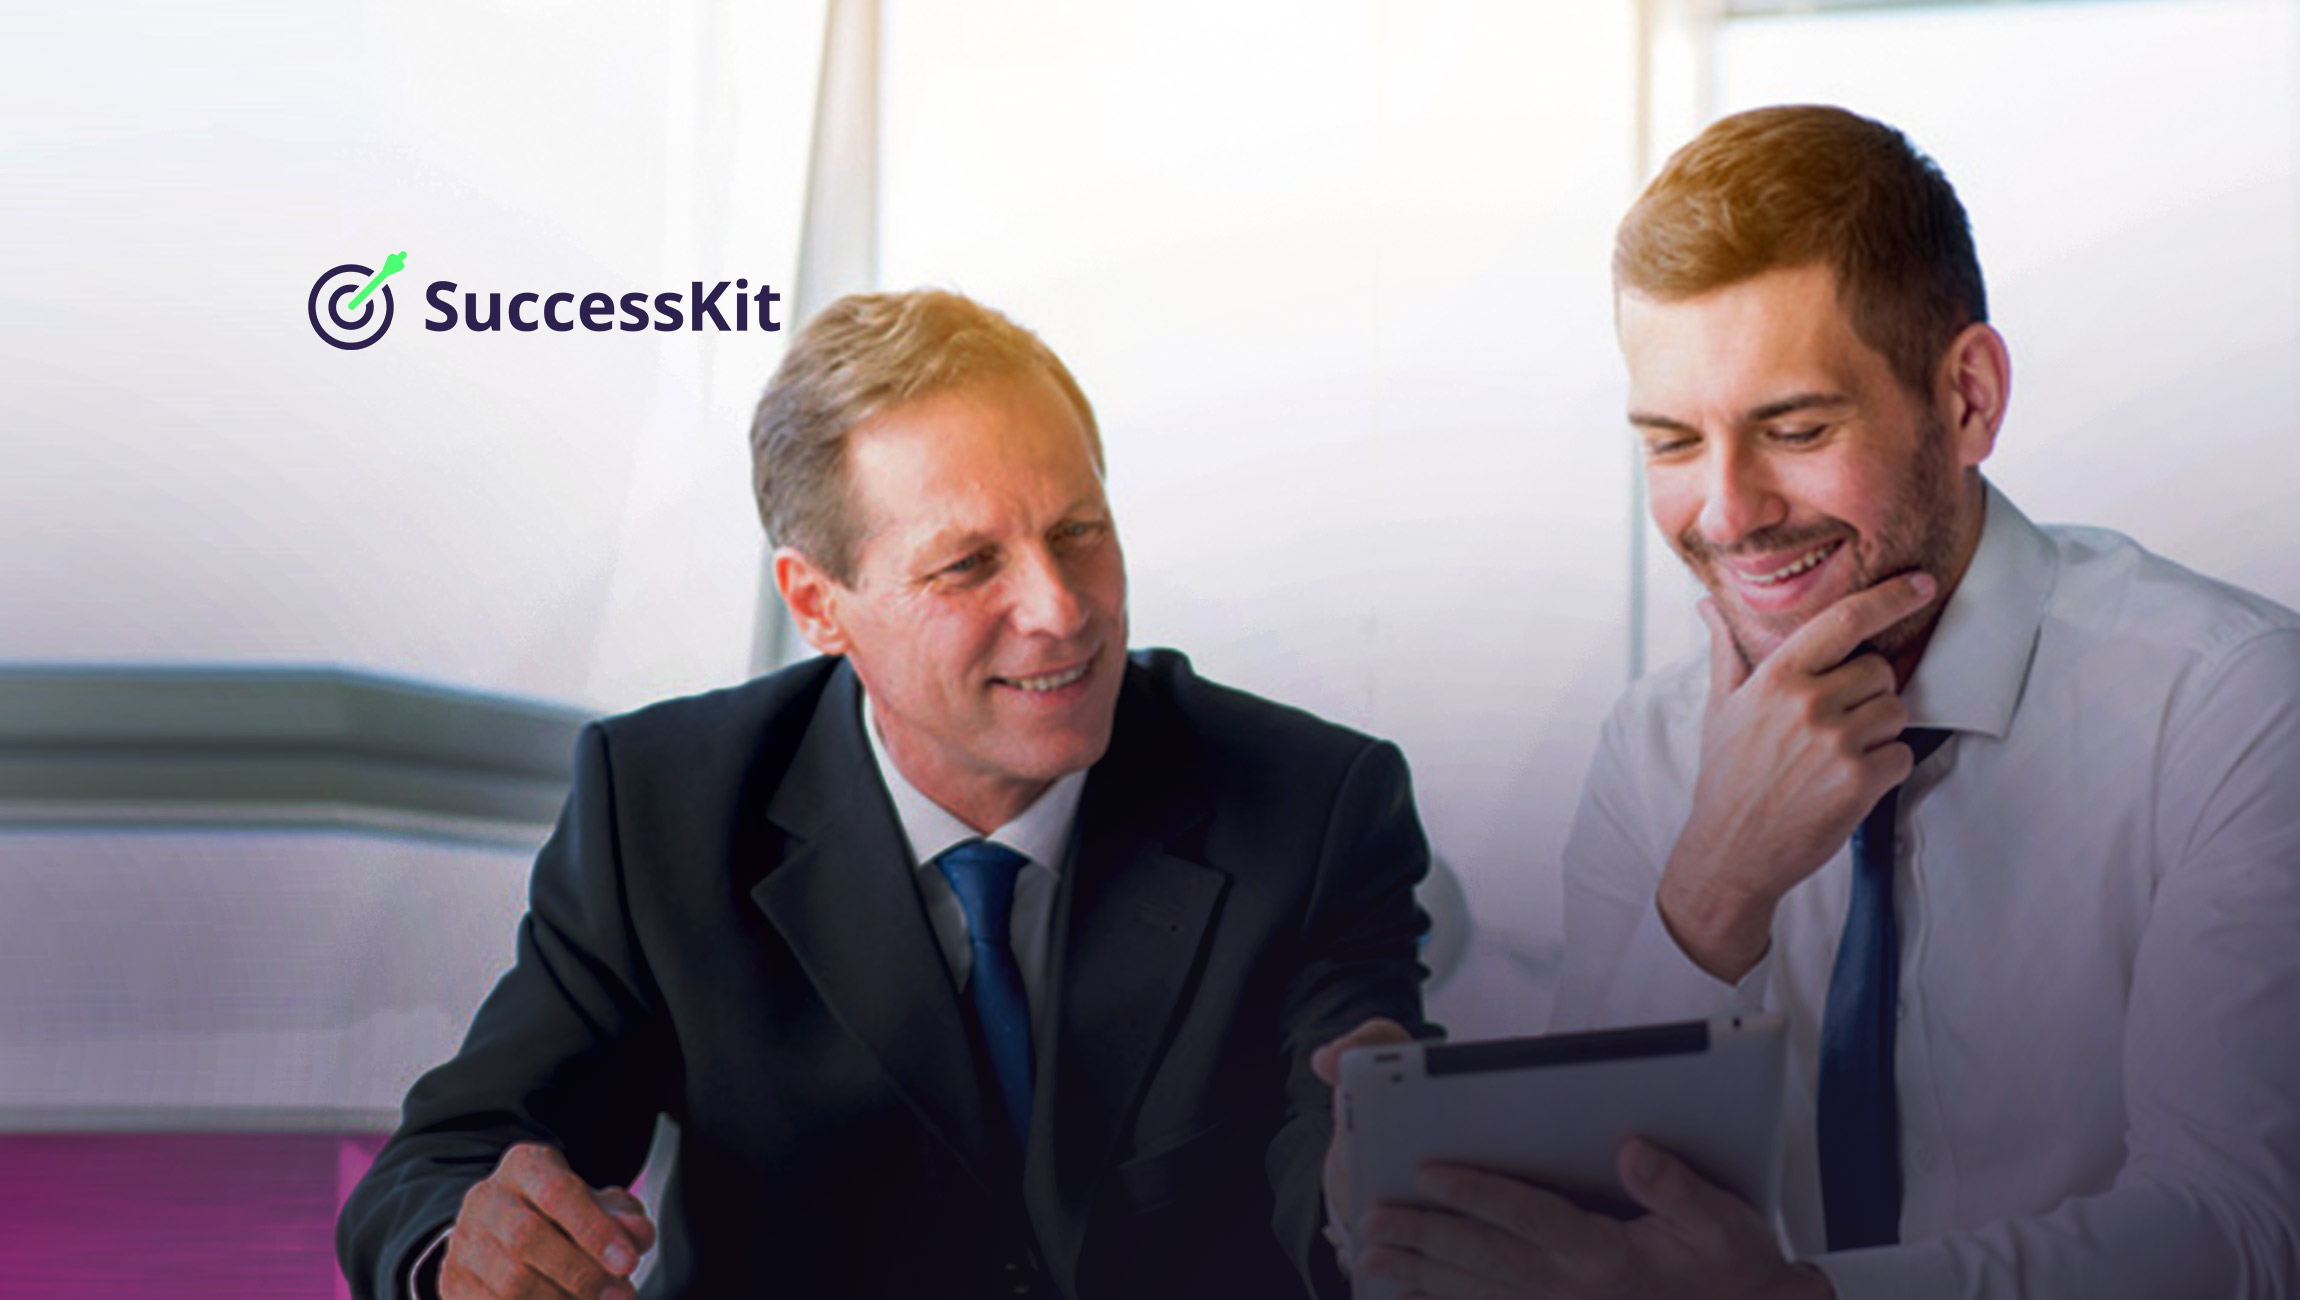 SuccessKit Creates B2B Case Studies at Scale to Power the Sales Process